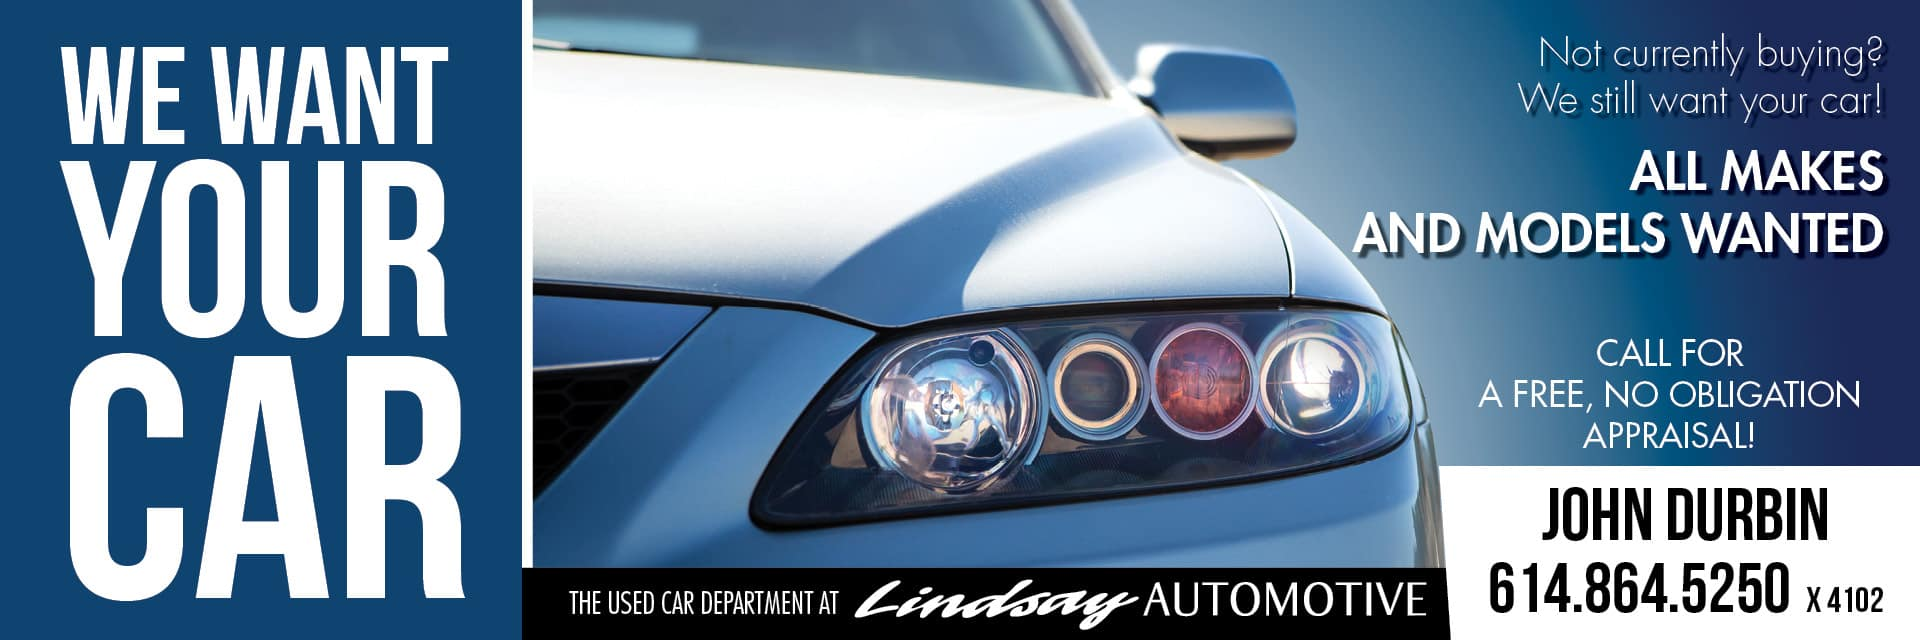 USED_CAR_BANNER_AUG20